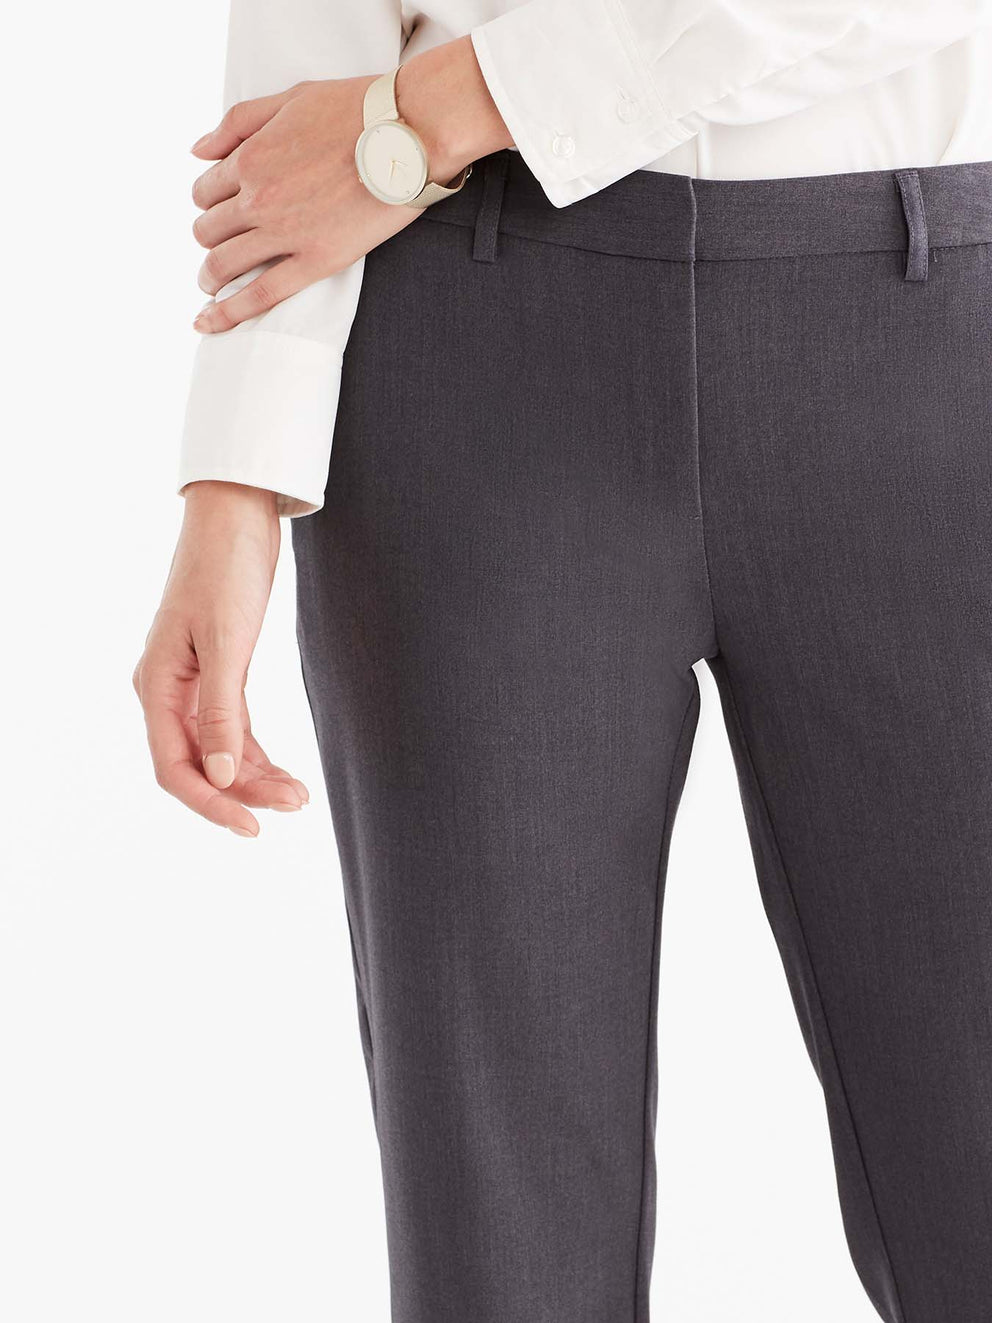 The Jones New York Grace Full-Length Pant in color Charcoal - Image Position 3